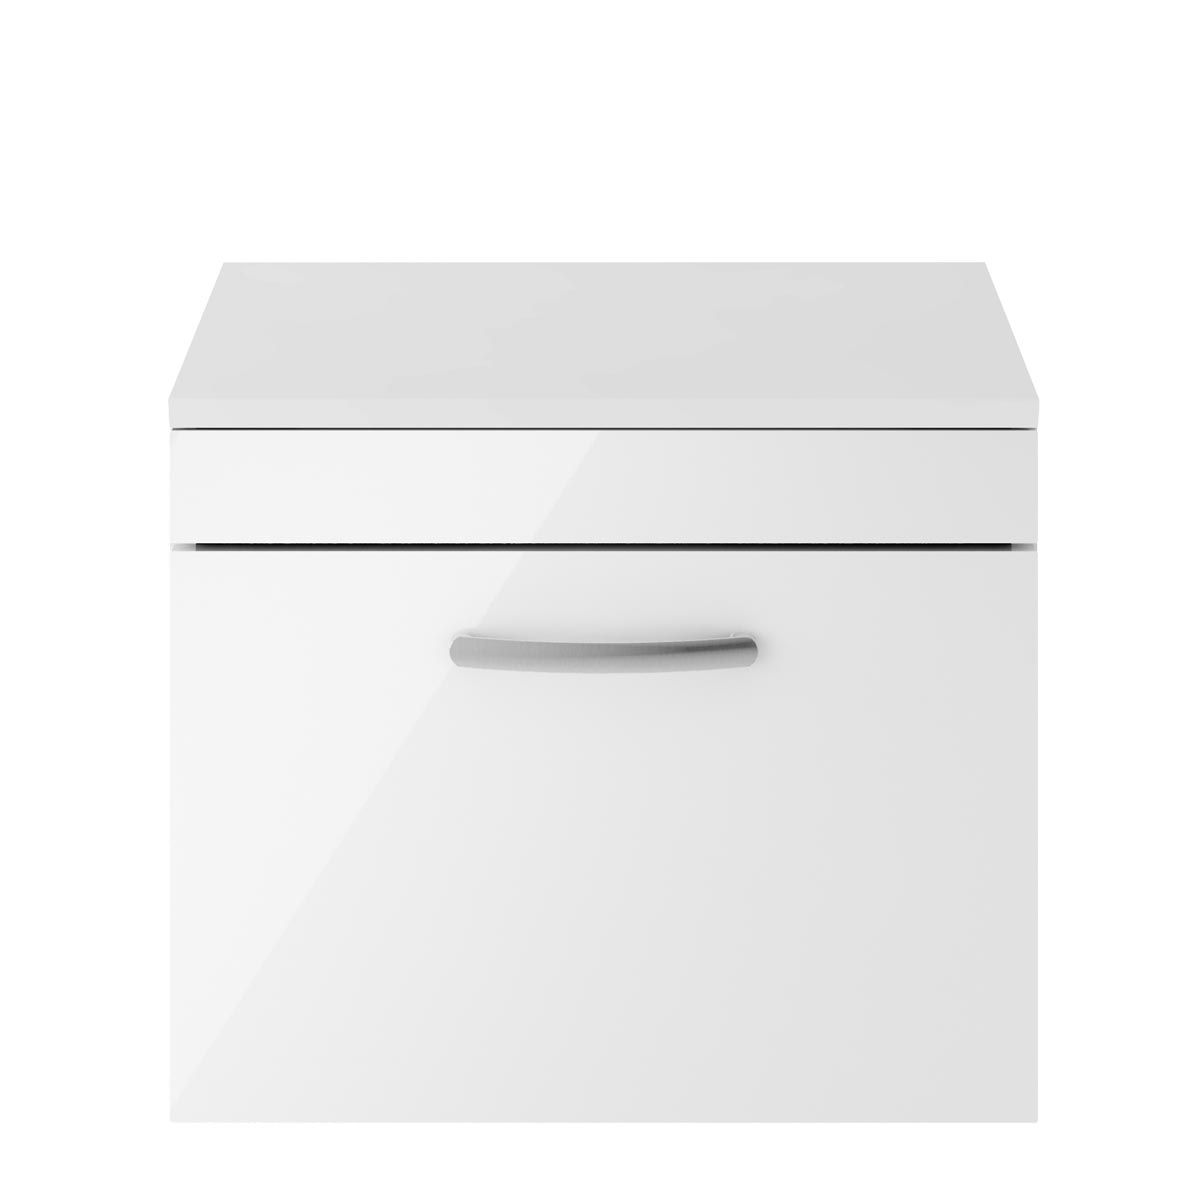 Nuie Athena Gloss White 1 Drawer Wall Hung Vanity Unit with 18mm Worktop 600mm